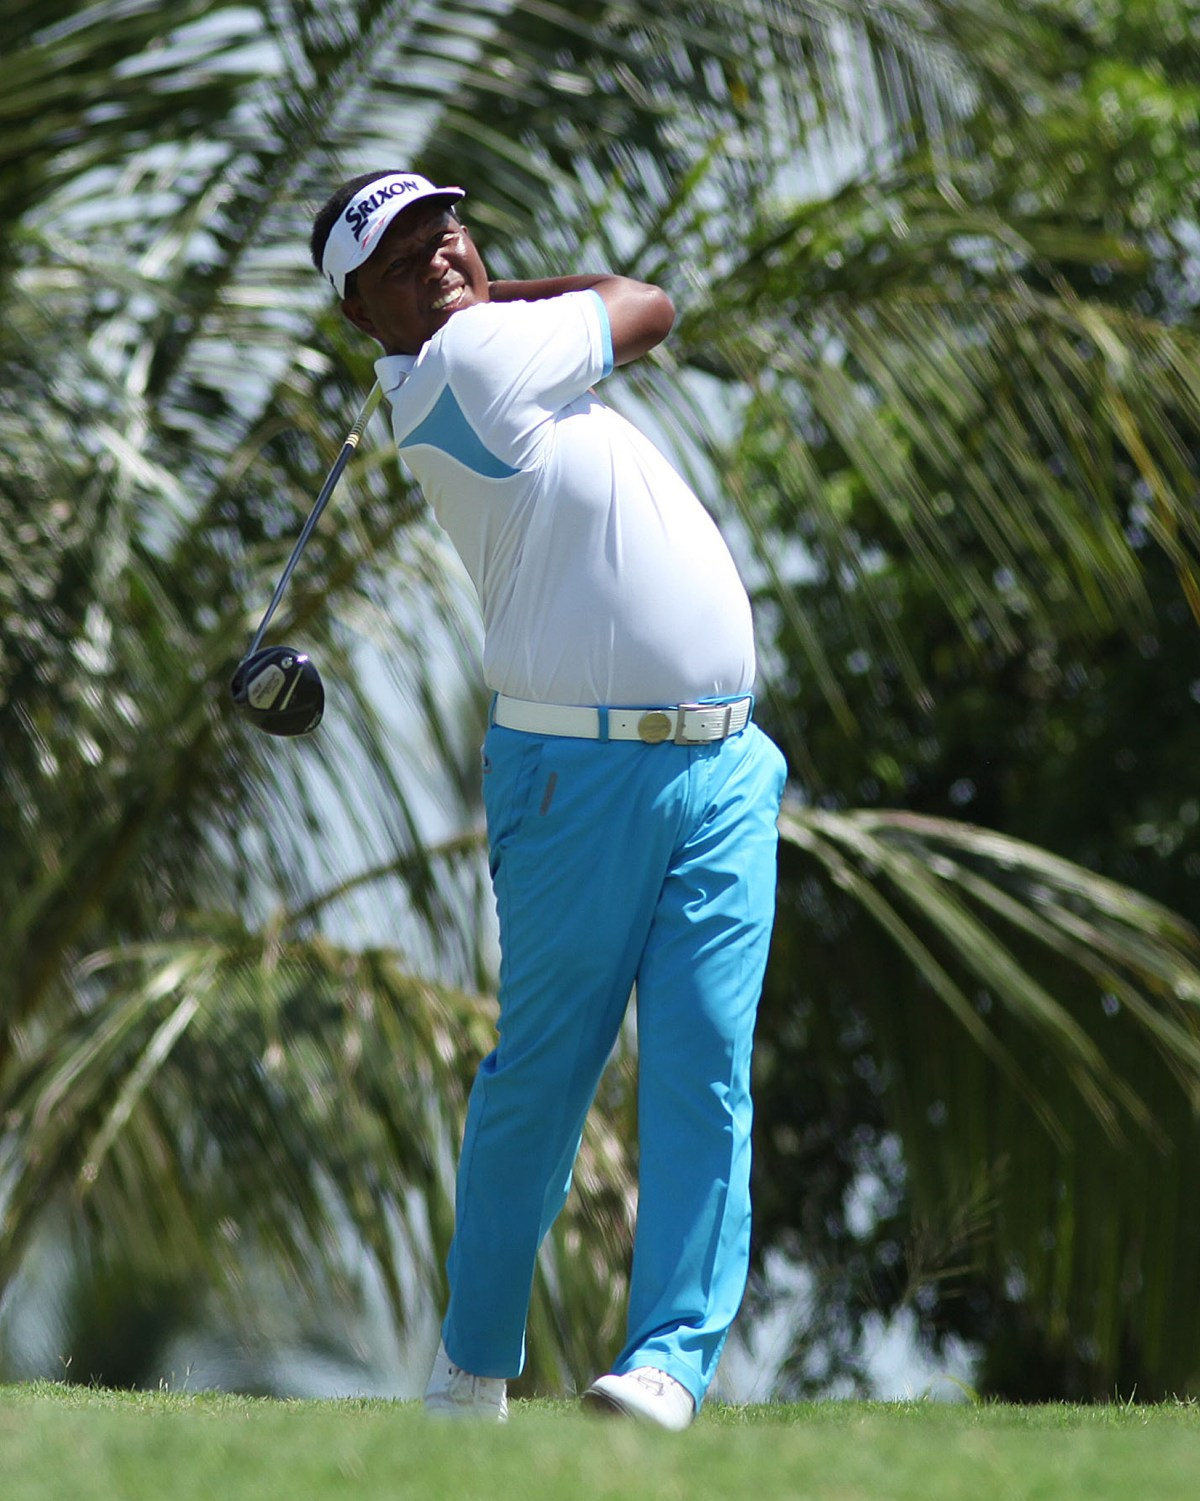 Tony Lascuna scored an ace on Hole No. 12 and earned a share of the lead with Benjie Magada.